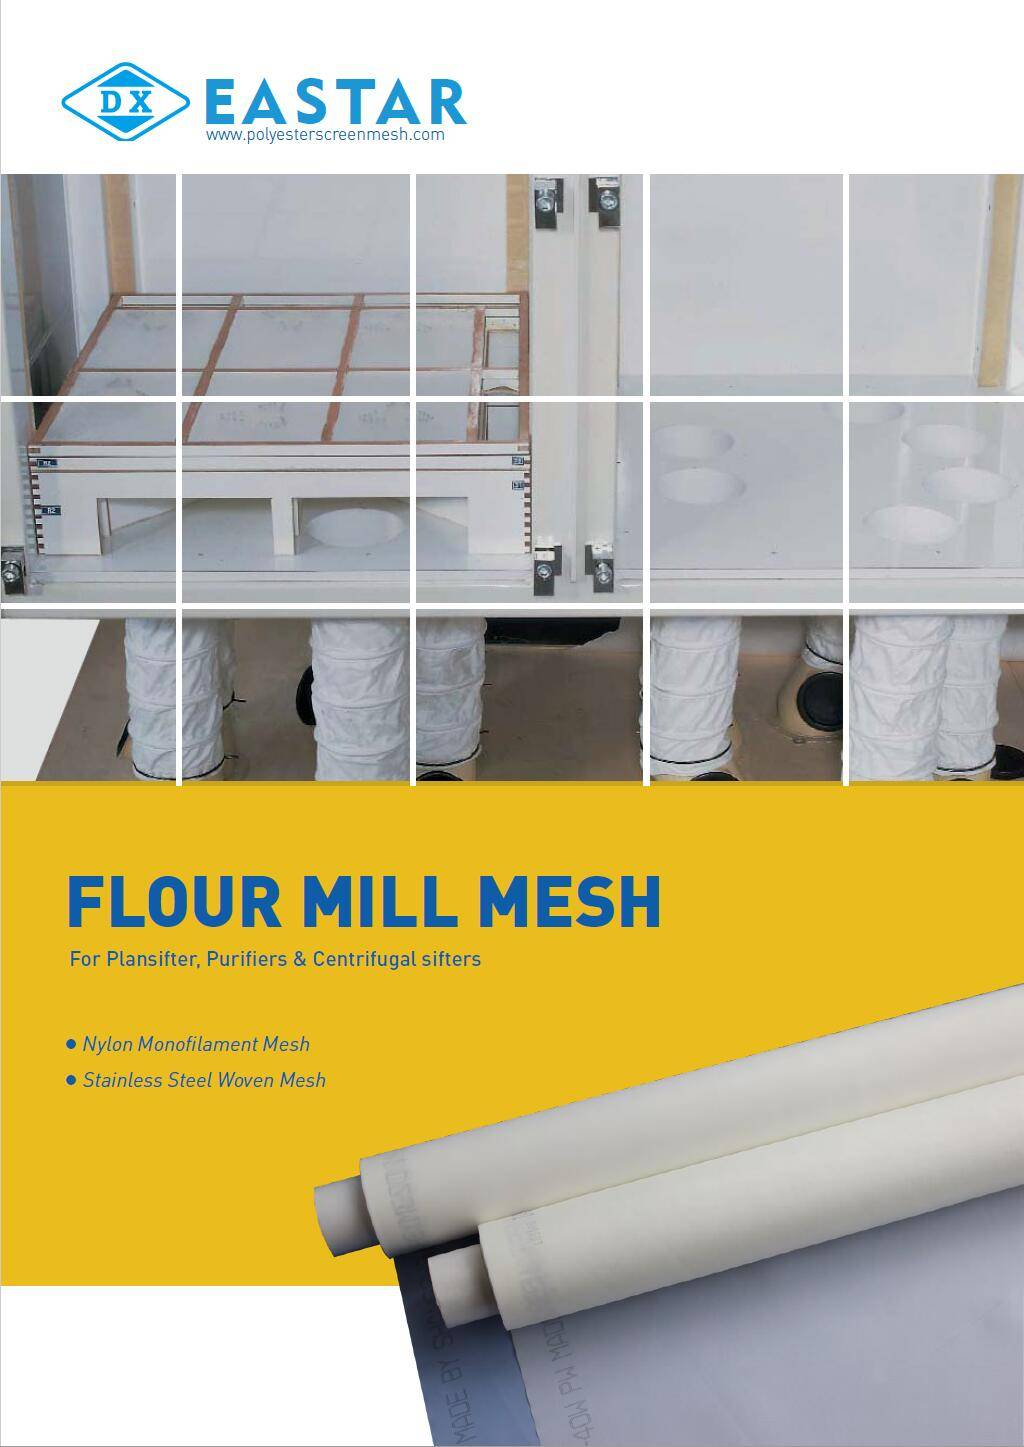 A Plansifter and several layers of nylon flour mill mesh in it.